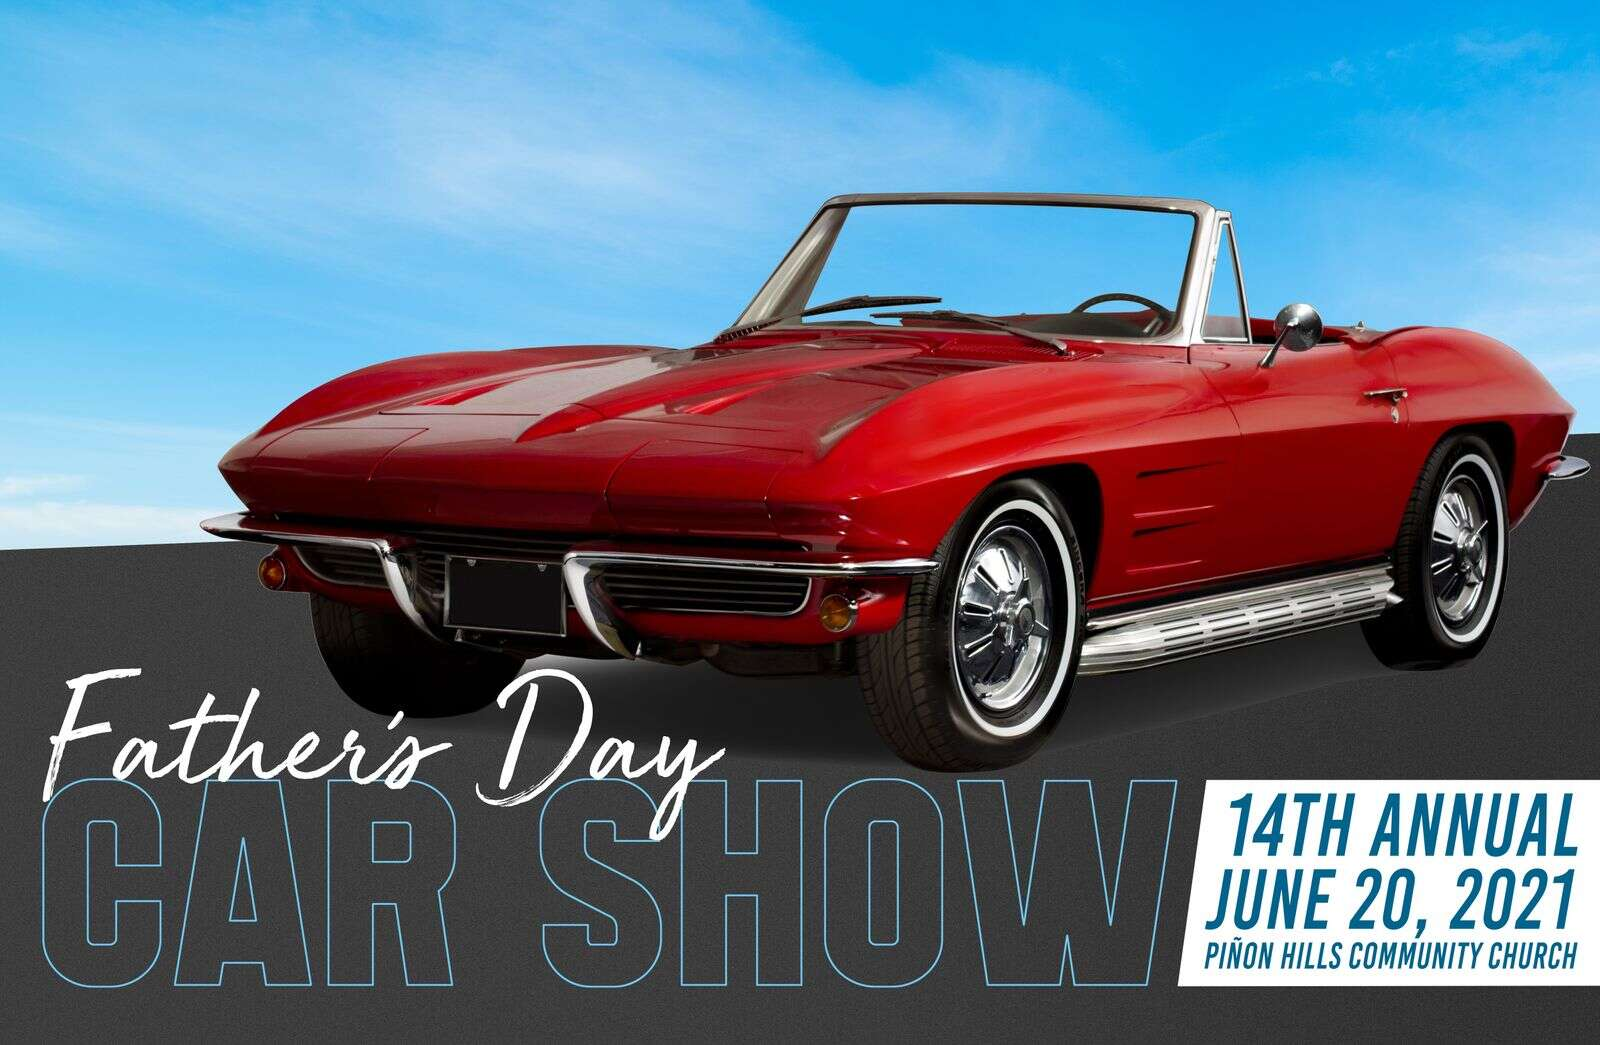 Pinon Hills Community Church to host Fathers Day car show